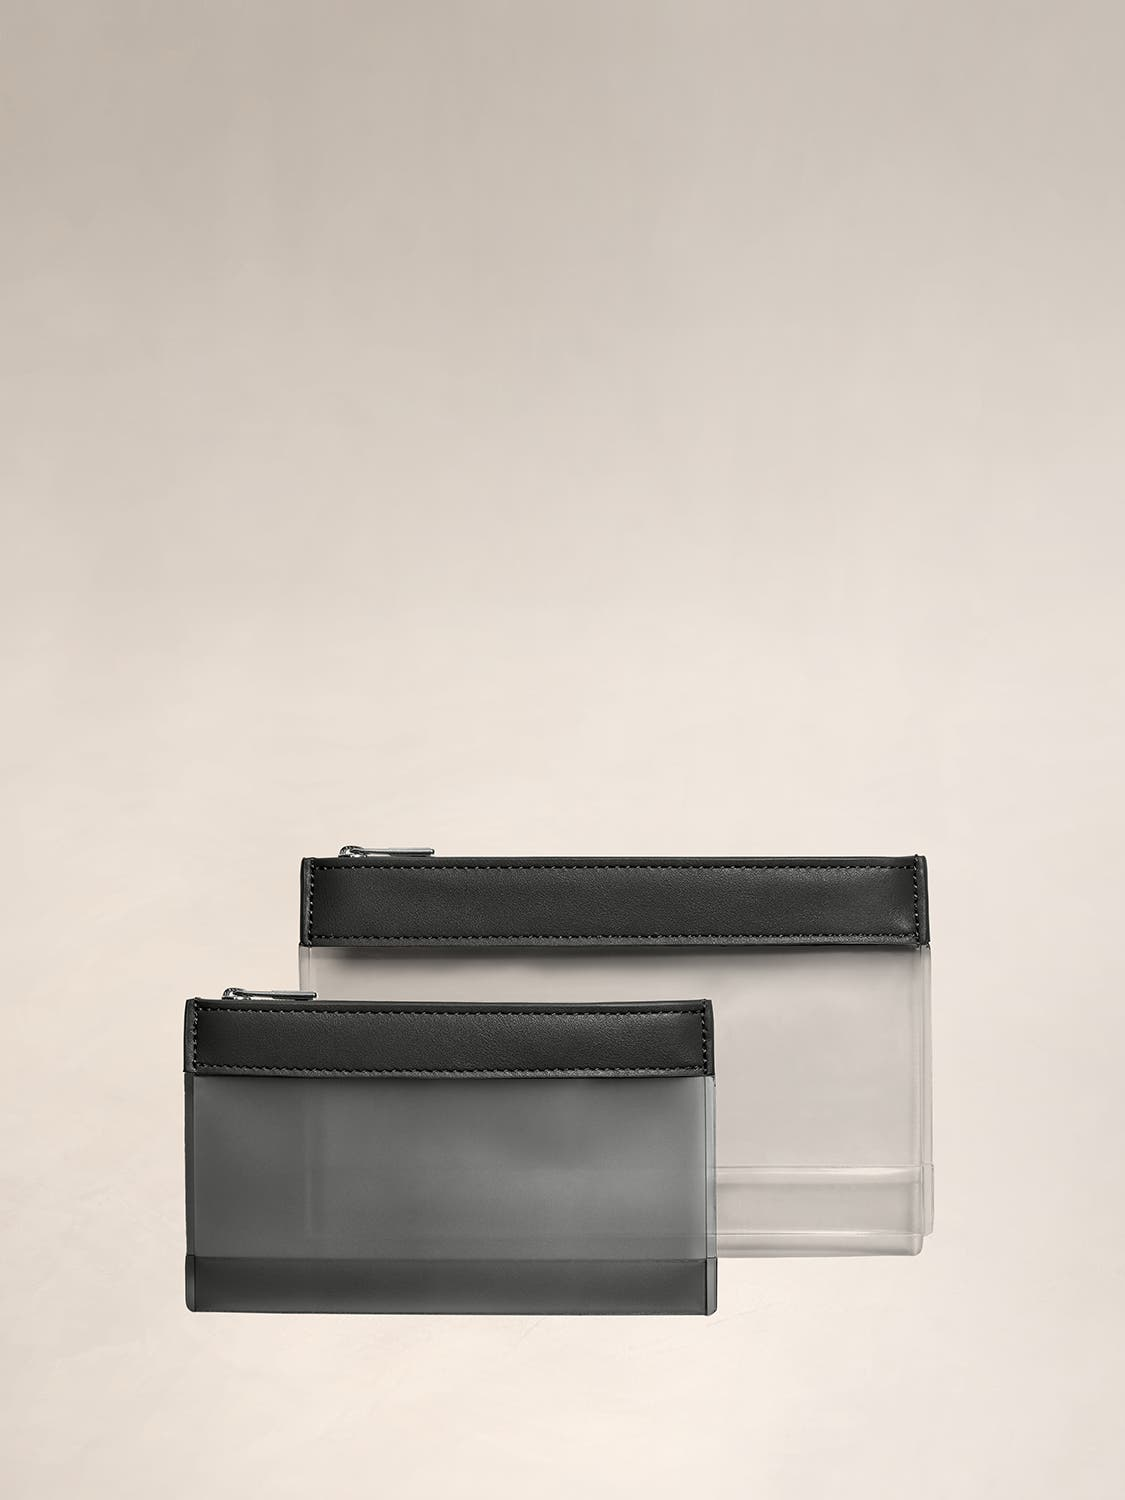 A TSA approved clear pouch set for travel and toiletries.